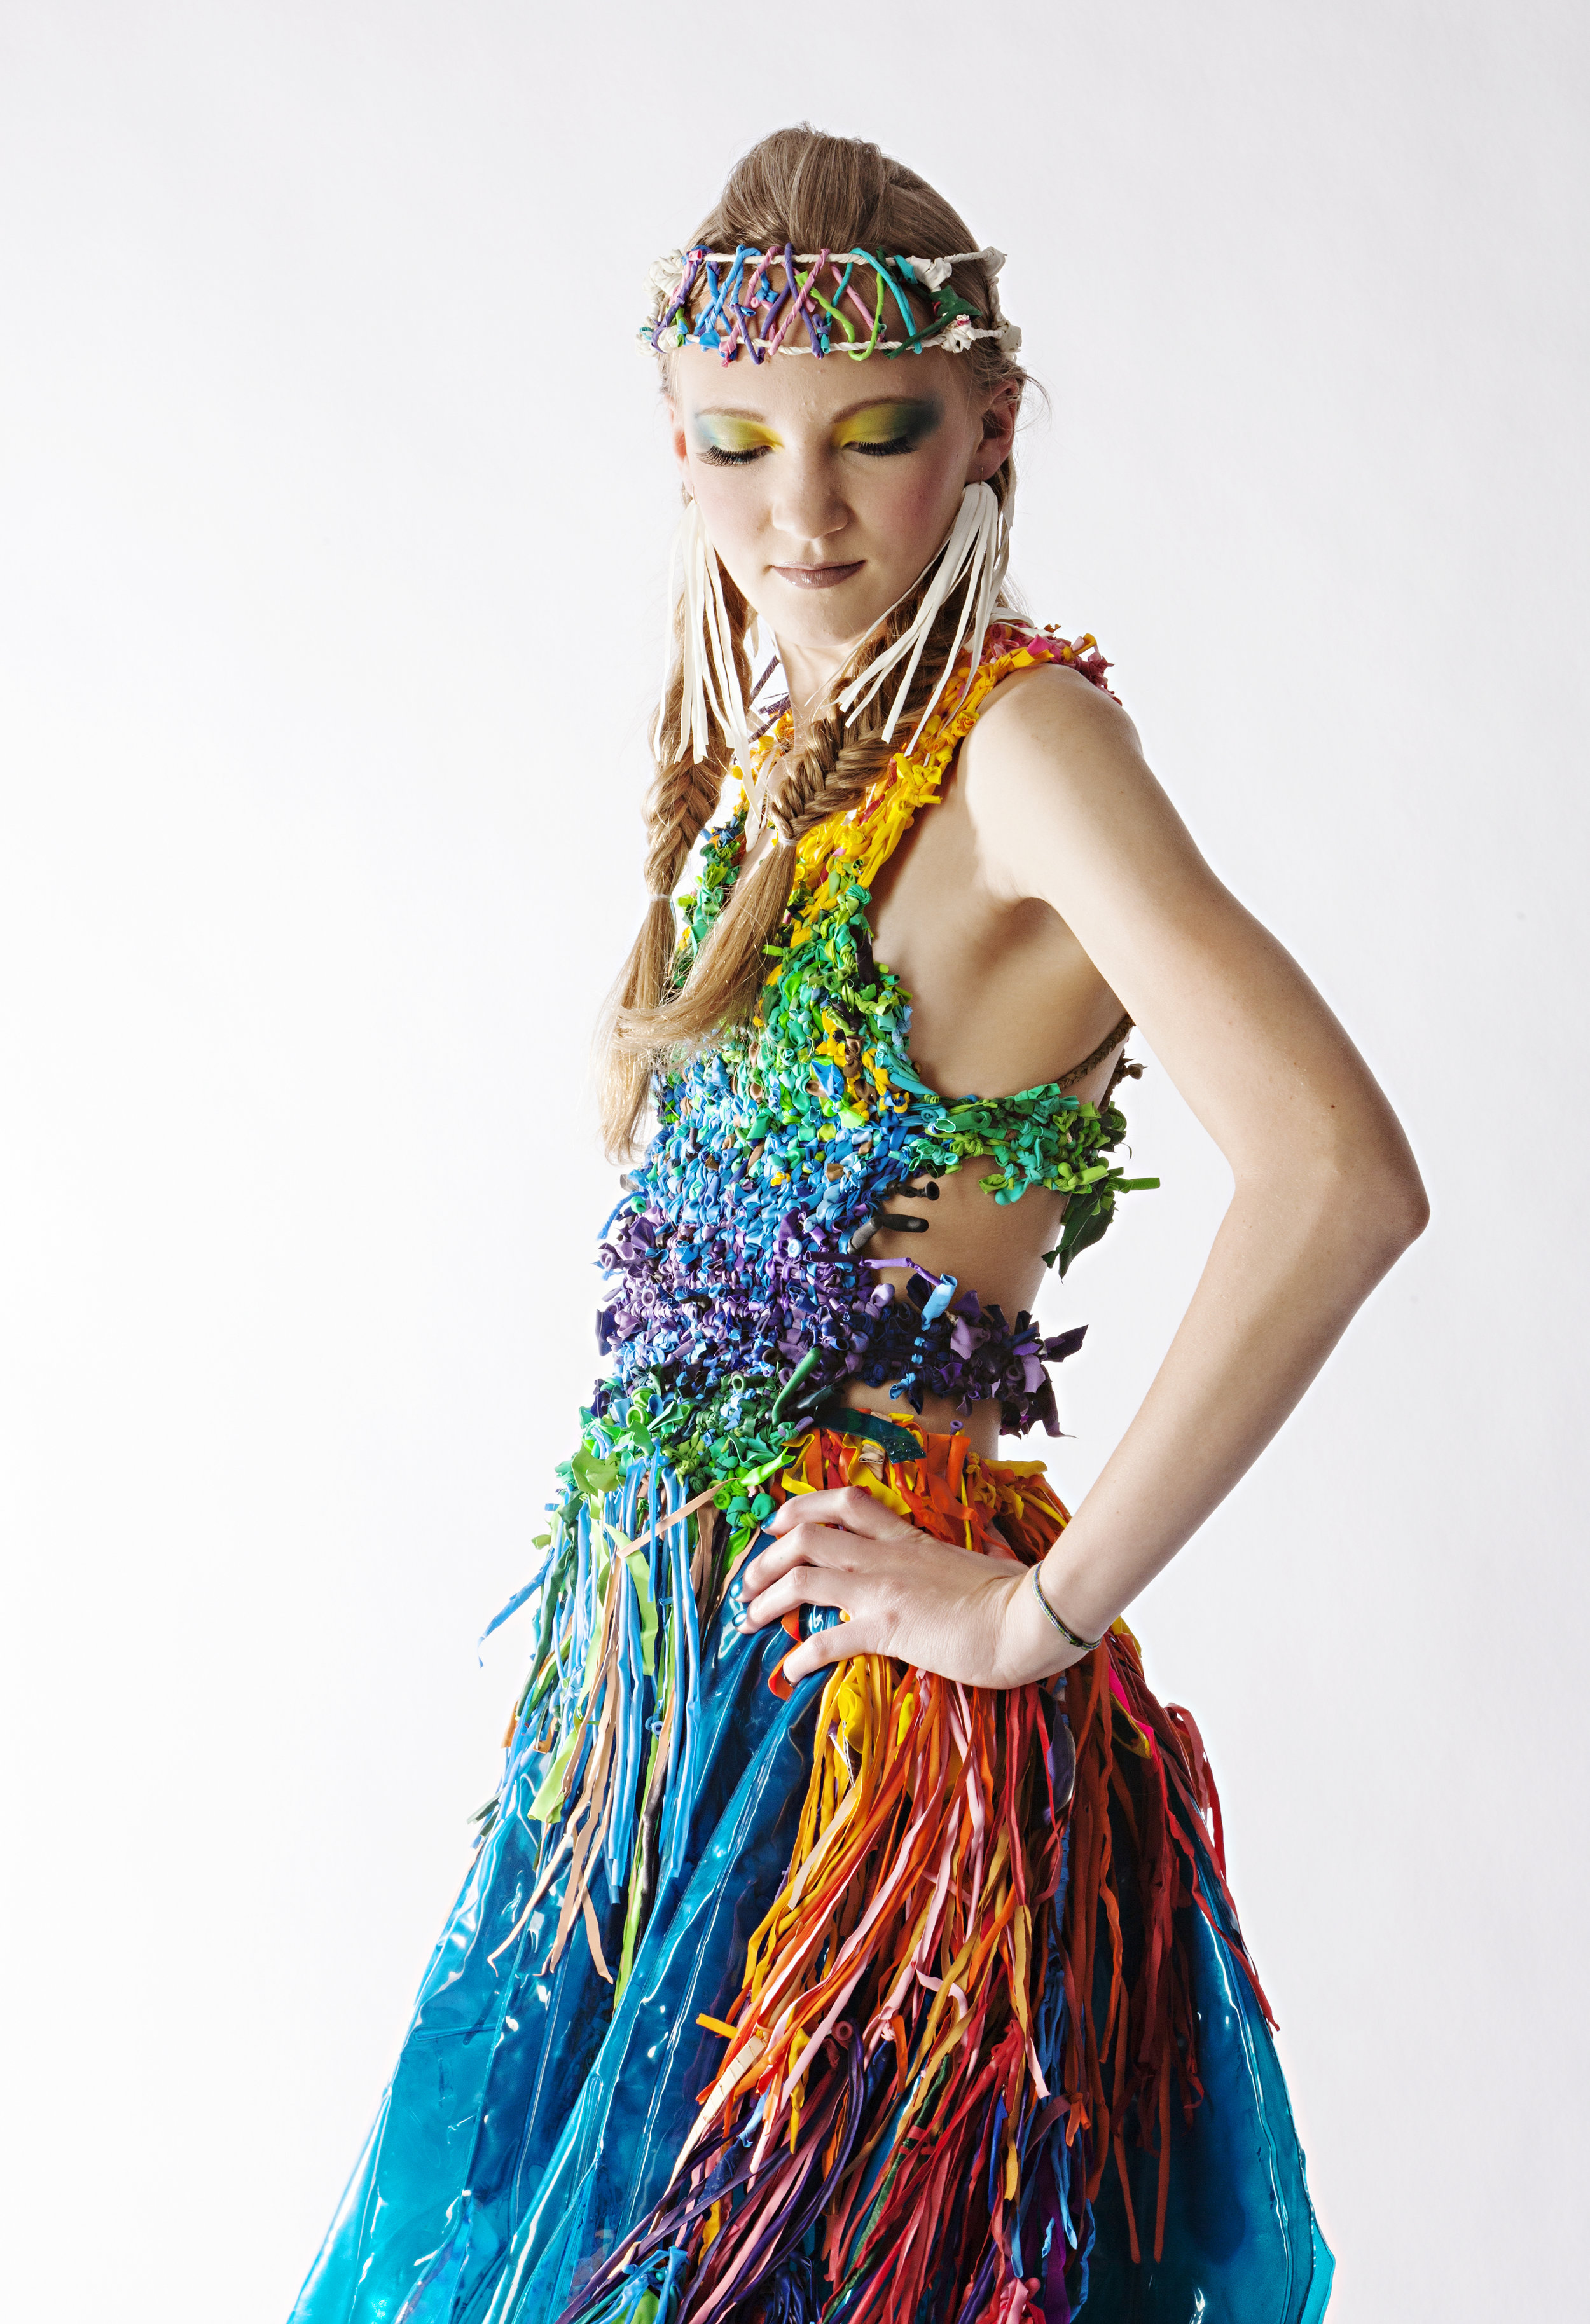 RR08 design featuring popped balloon bodice and fringe; image:  Inga Pae .